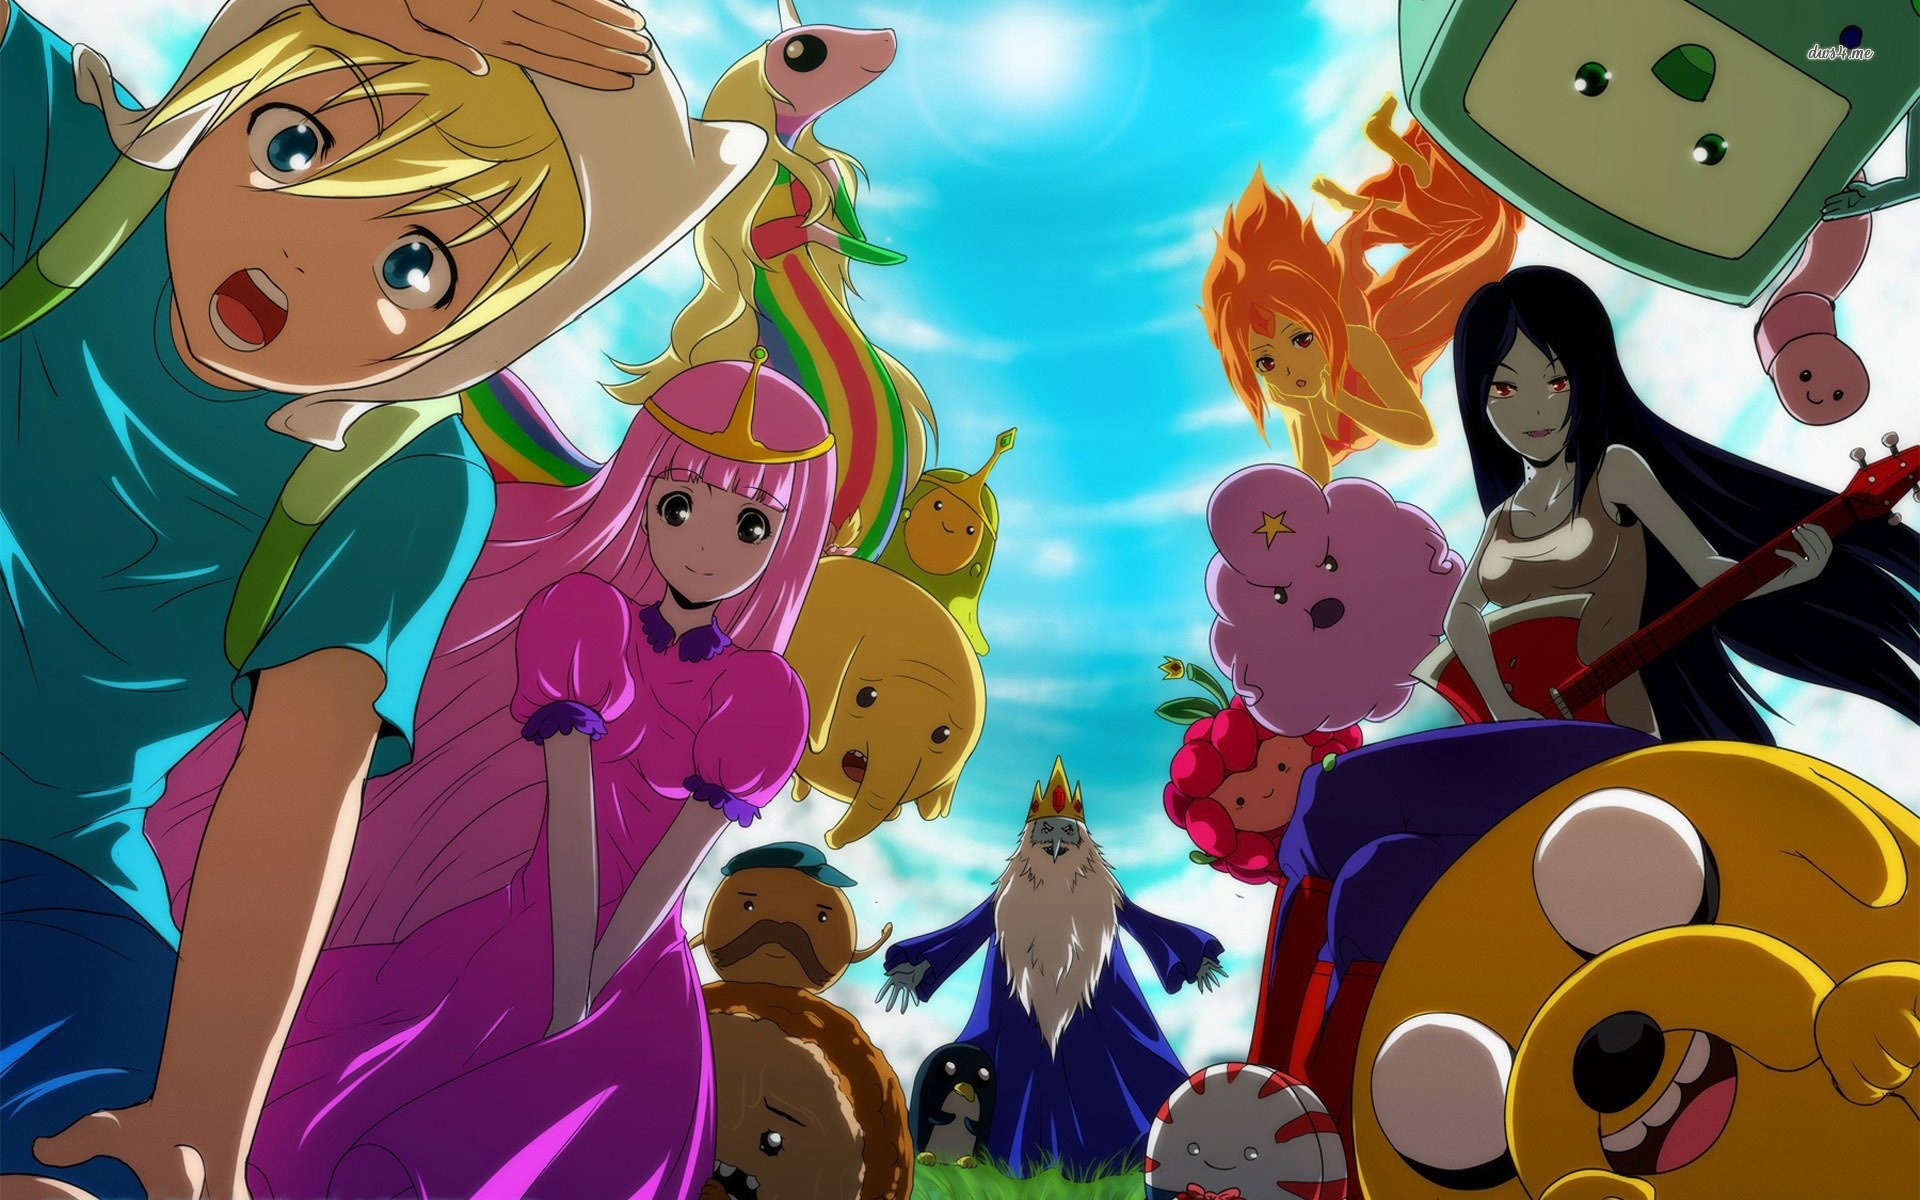 10 Latest Adventure Time Wallpaper Anime FULL HD 1920×1080 For PC Background